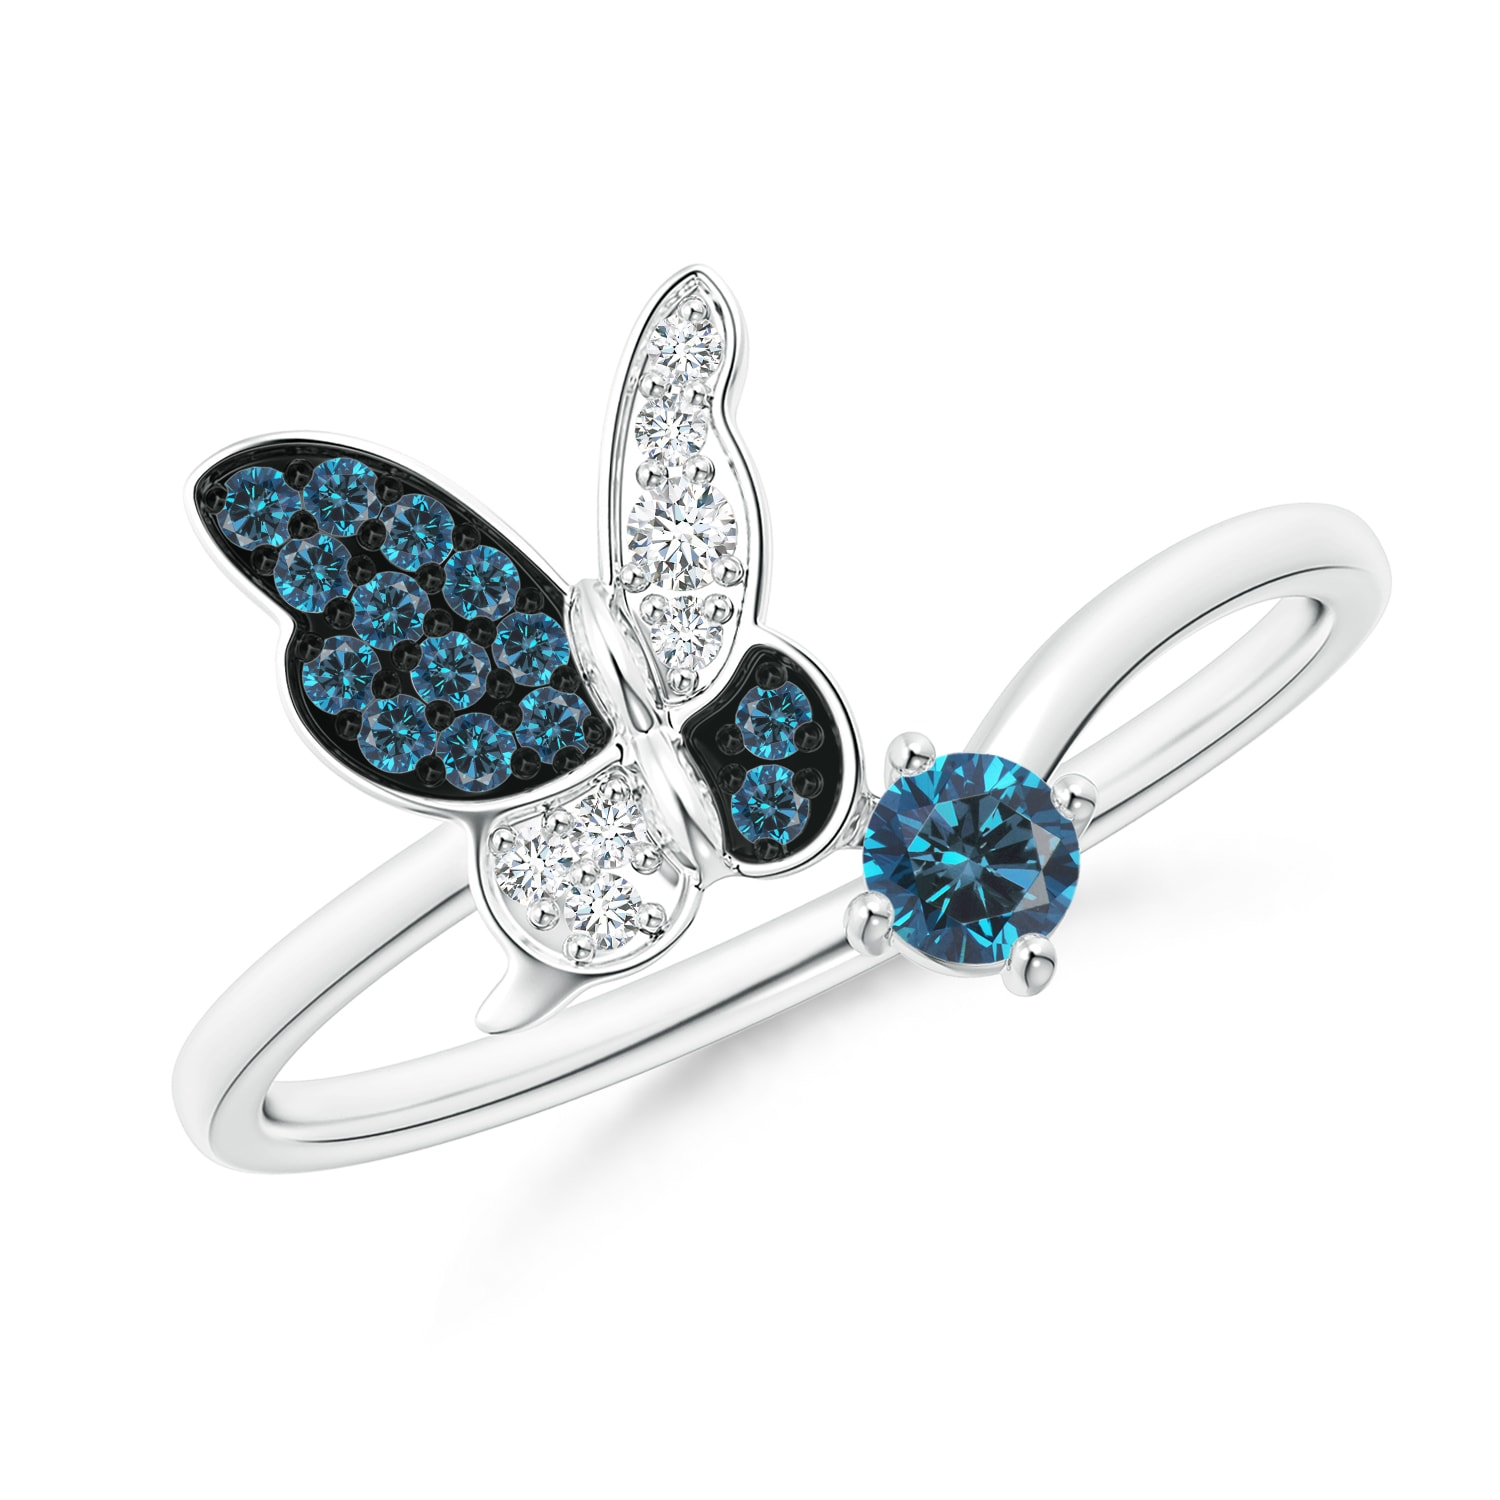 Double Butterfly Ring in 2.00 Ct Yellow /& Blue Diamond w// 14k White Gold Over